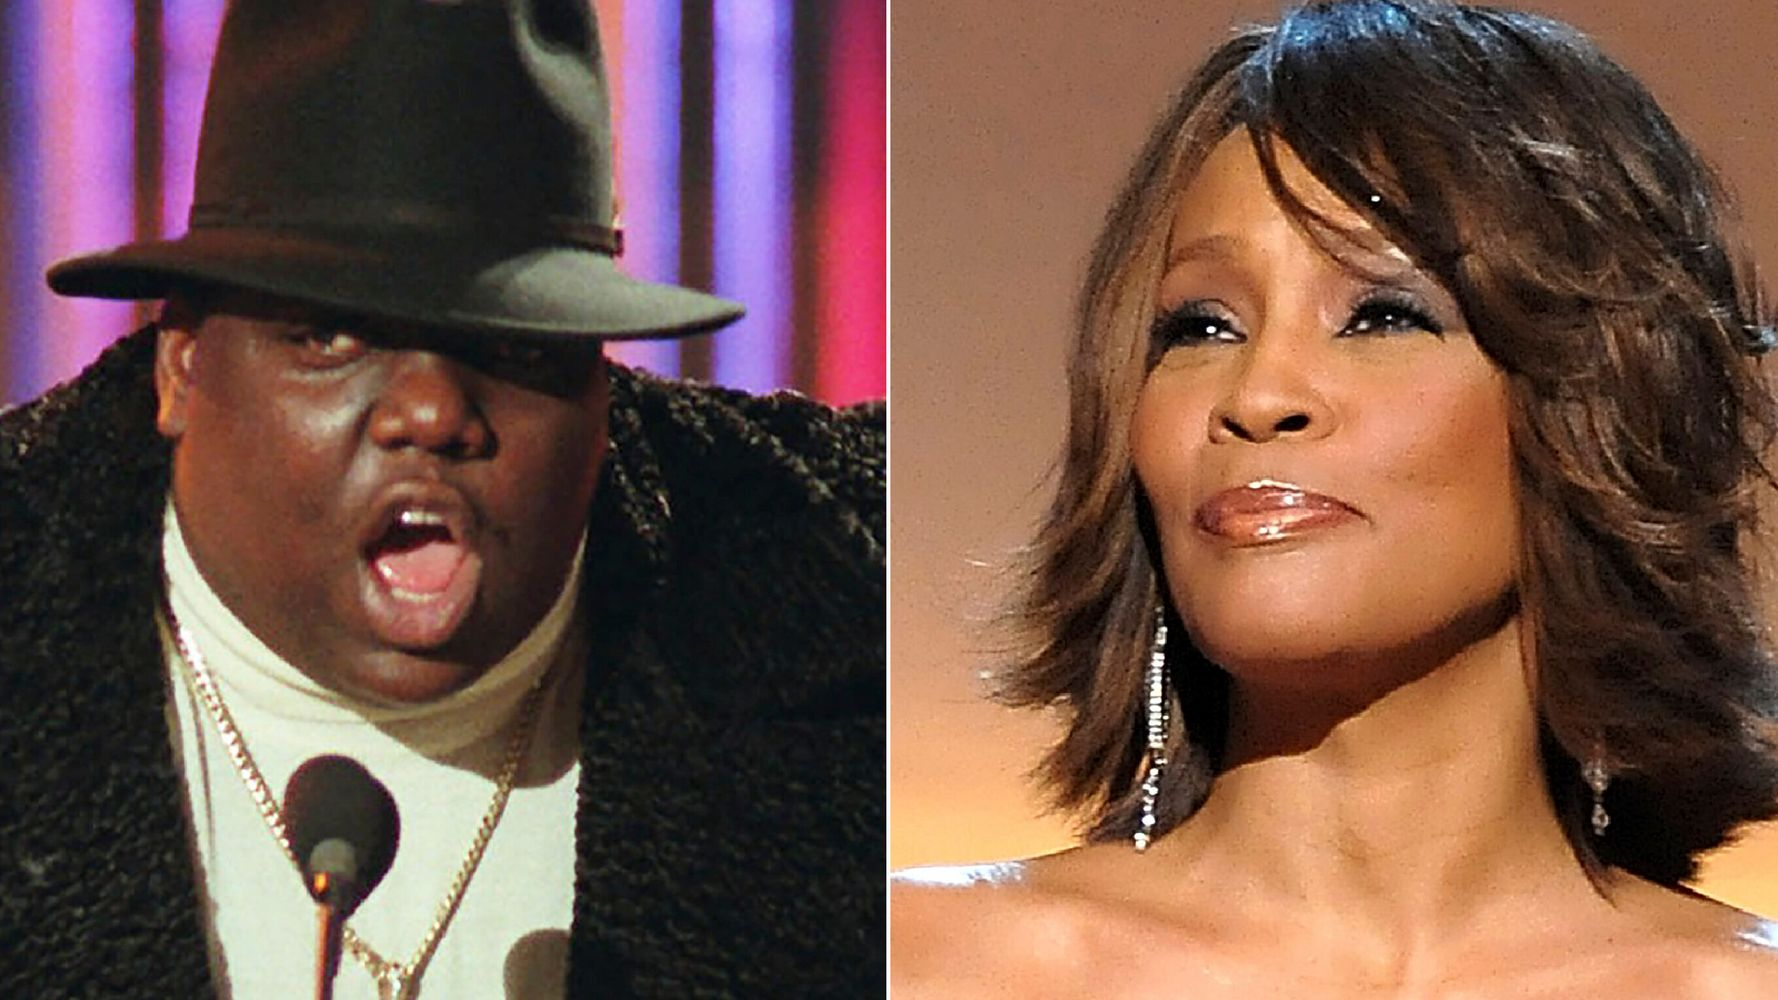 Westlake Legal Group 5da5d345200000cb0c501dd7 Whitney Houston, Notorious B.I.G. Nominated For Rock And Roll Hall Of Fame